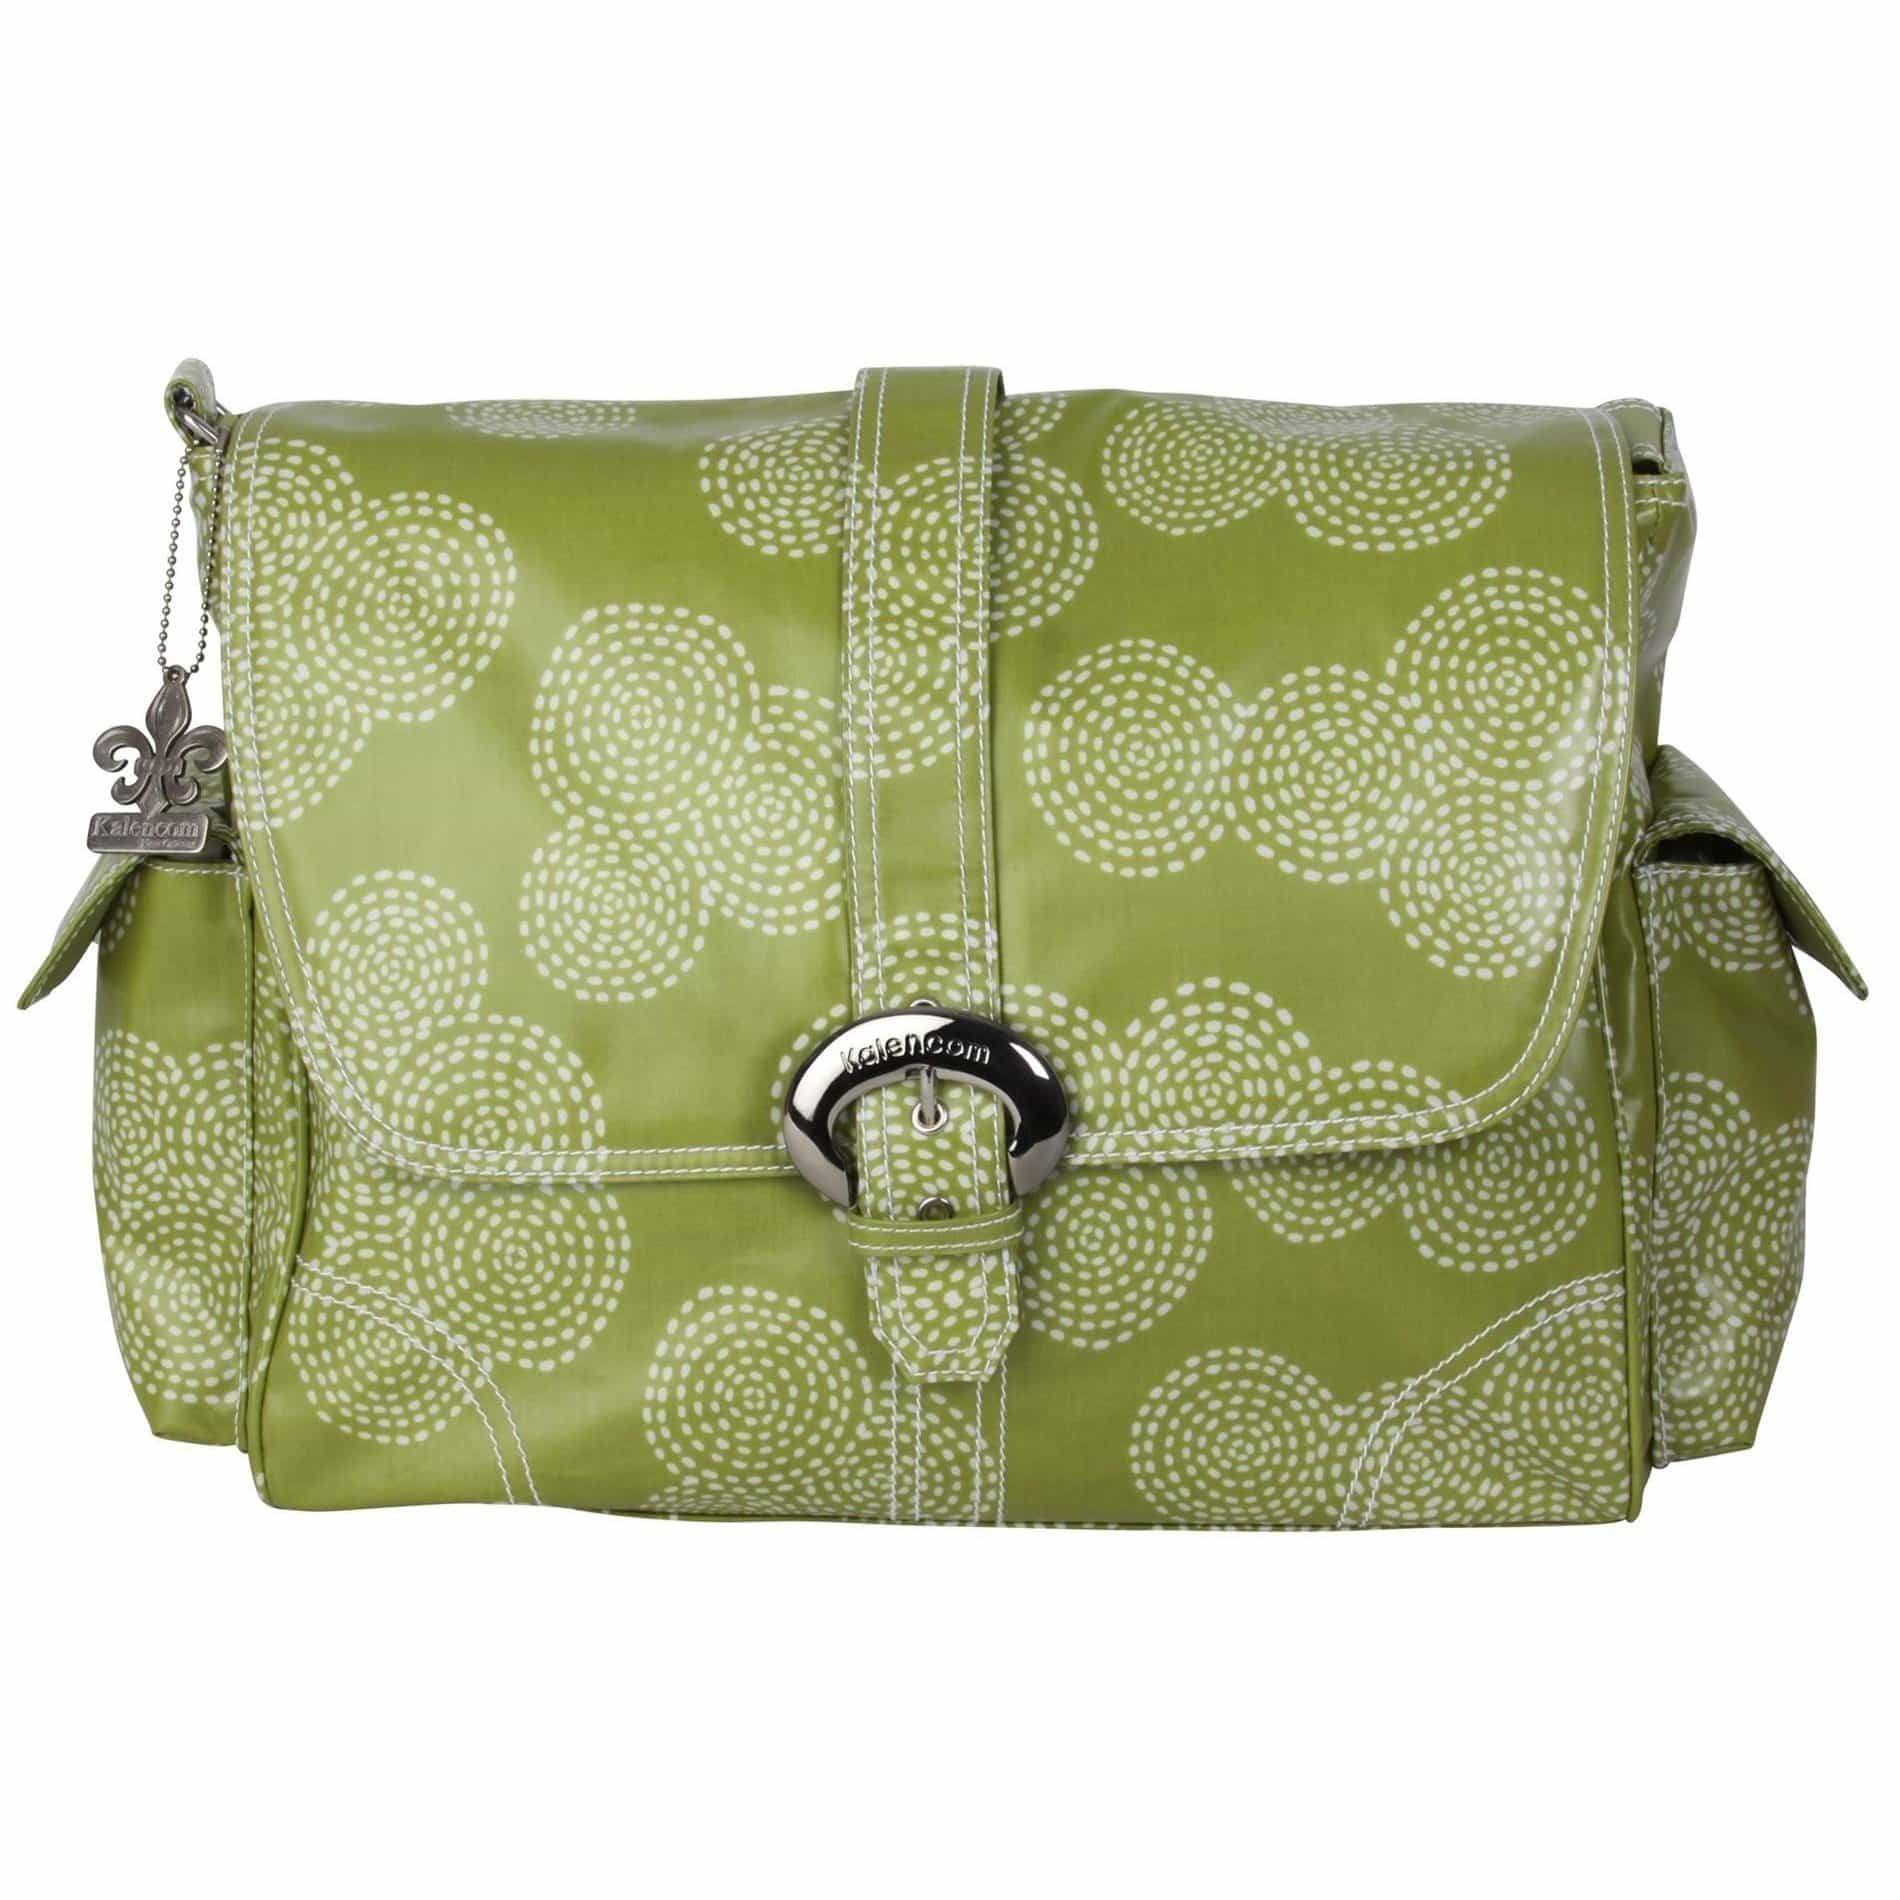 Stitches - Olive Matte Coated Buckle Diaper Bag | Style 2960 - Kalencom-Diaper Bags-Jack and Jill Boutique